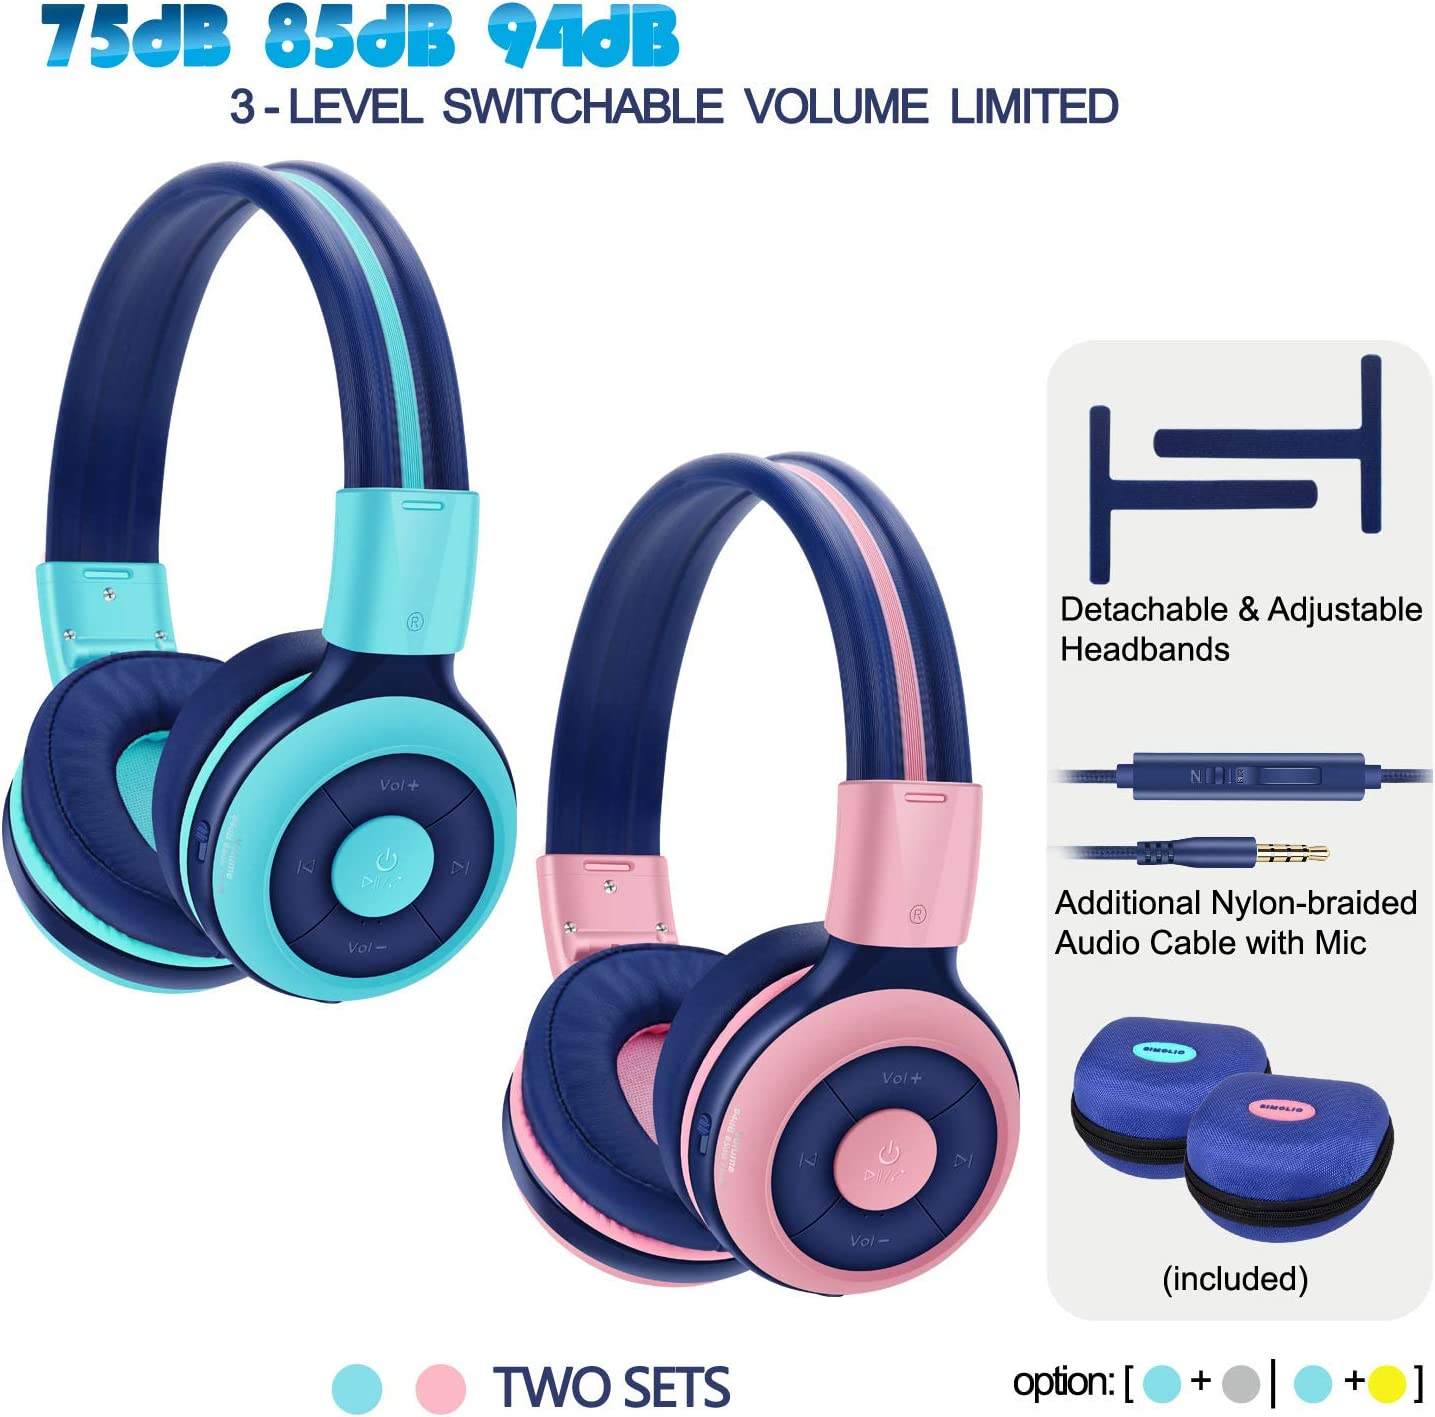 2 Pack of SIMOLIO Wireless Bluetooth Headphones for Kids with 75dB,85dB,94dB Volume Limit, Kids Headphone with Mic Hard Case, Children Headphones with Share Jack for Girls Boys,Toddlers Pink Mint